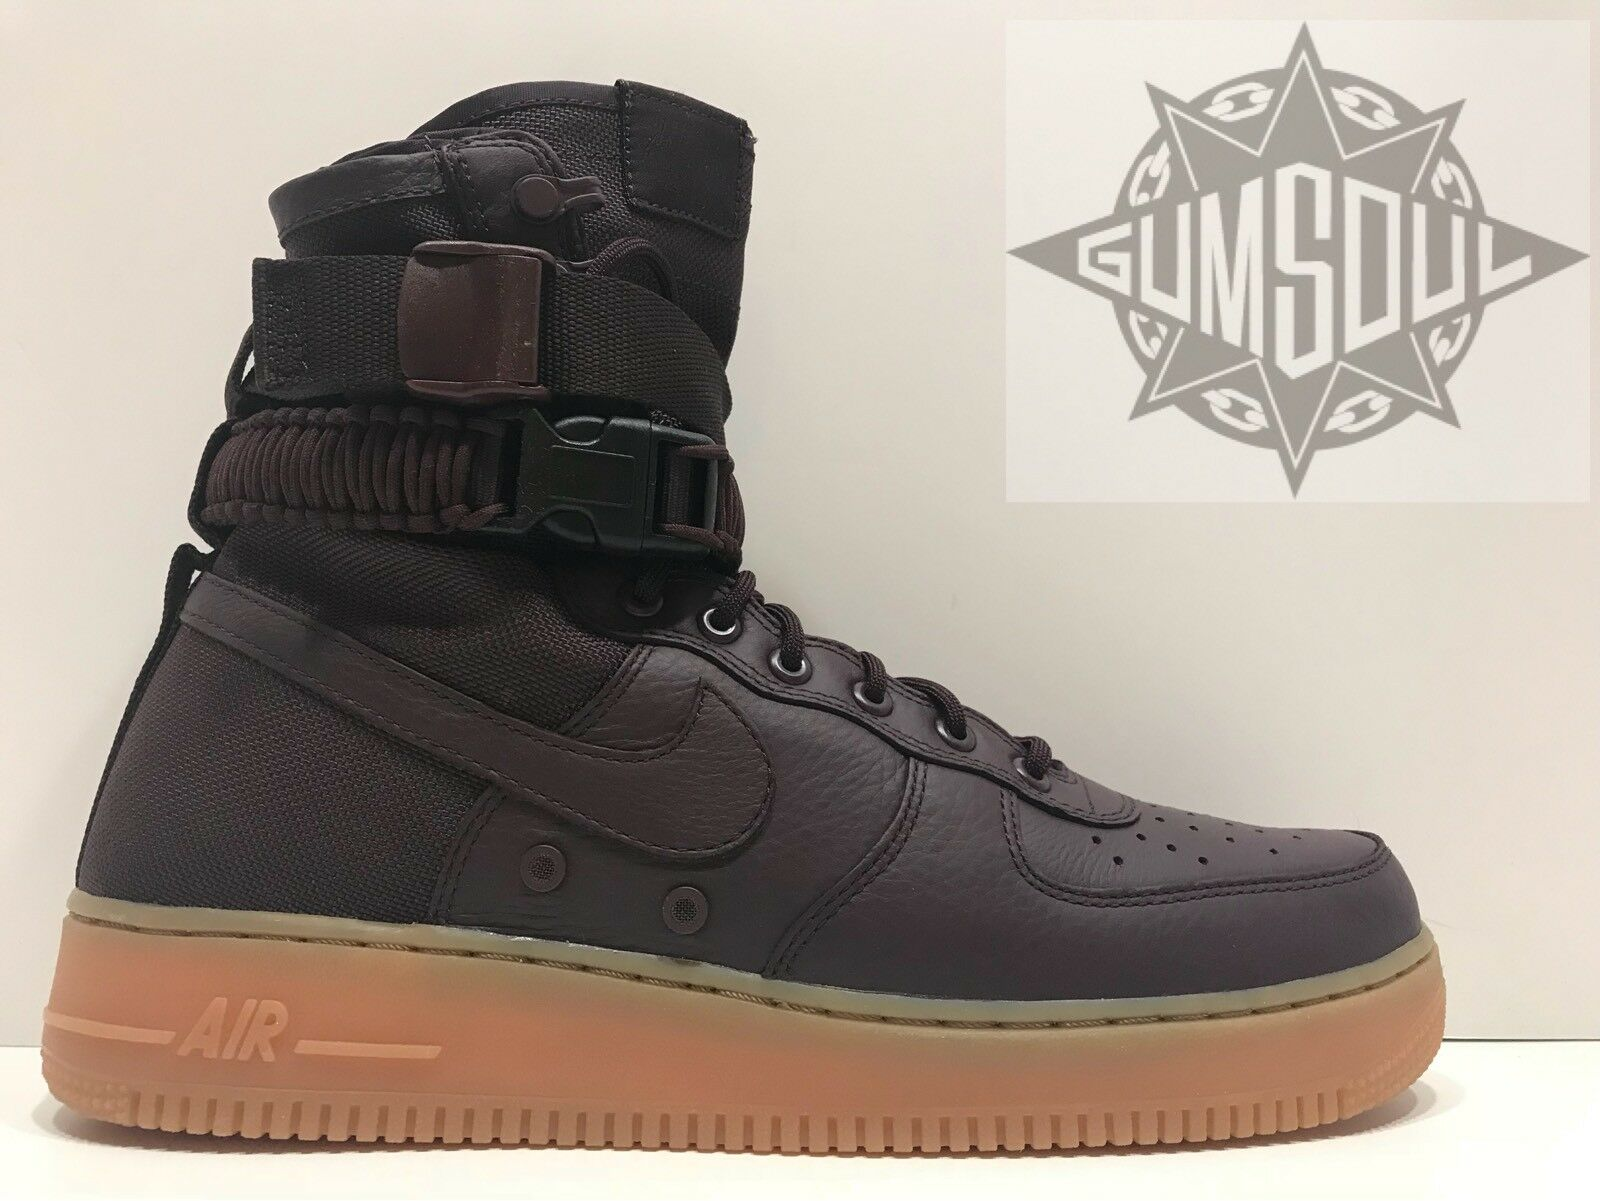 Nike sf af1 speciale campo air force 1 in borgogna una gomma 864024 600 sz